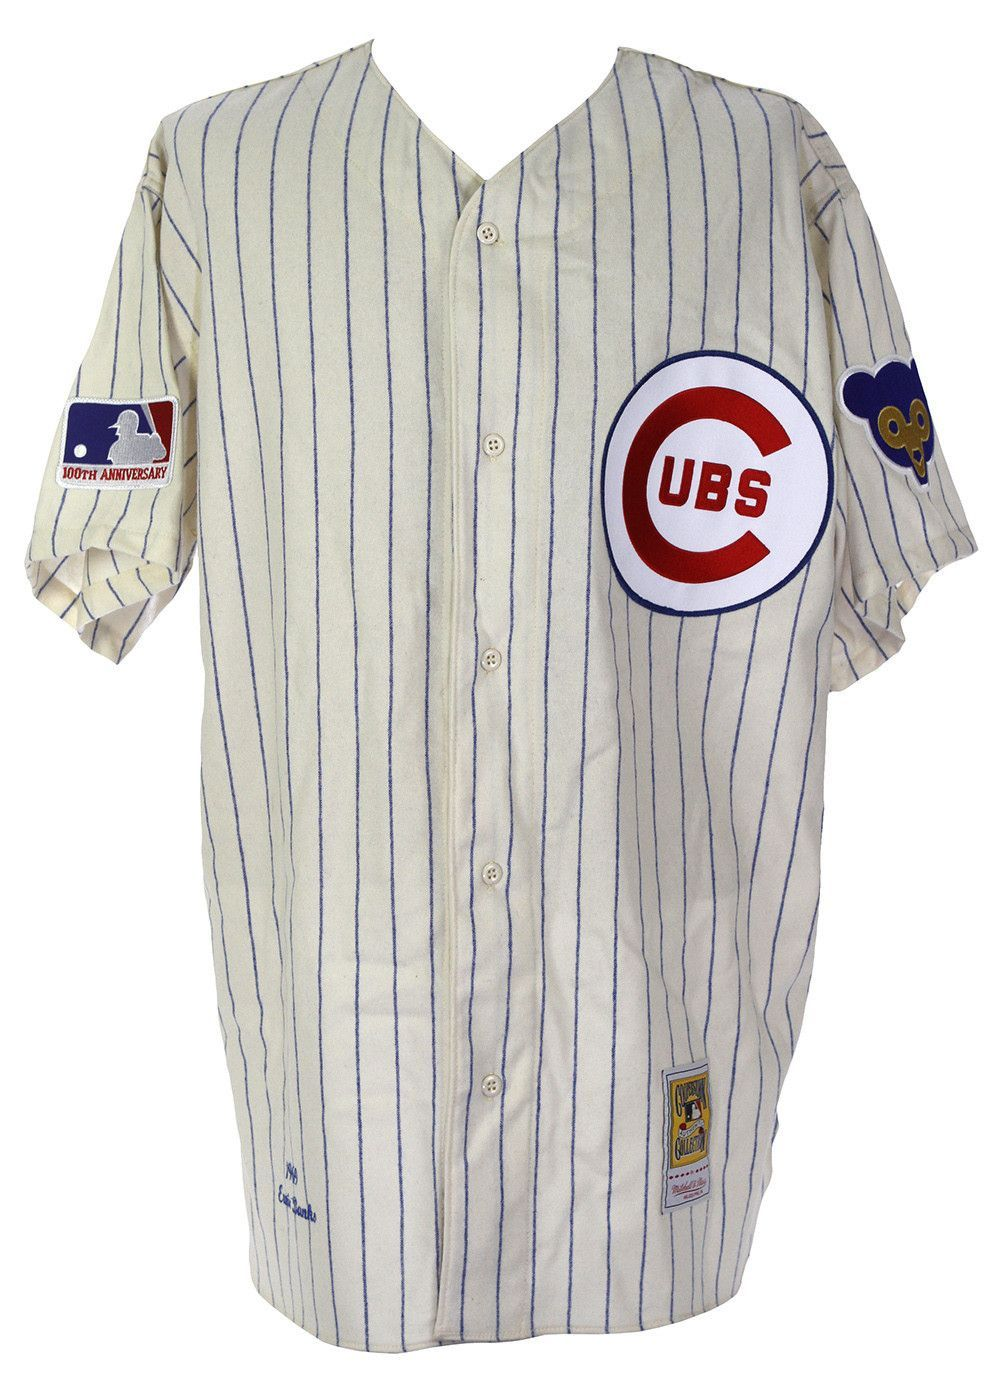 promo code 488f6 8dbd3 Chicago Cubs 1969 Ryne Sandberg Mitchell & Ness 100th ...